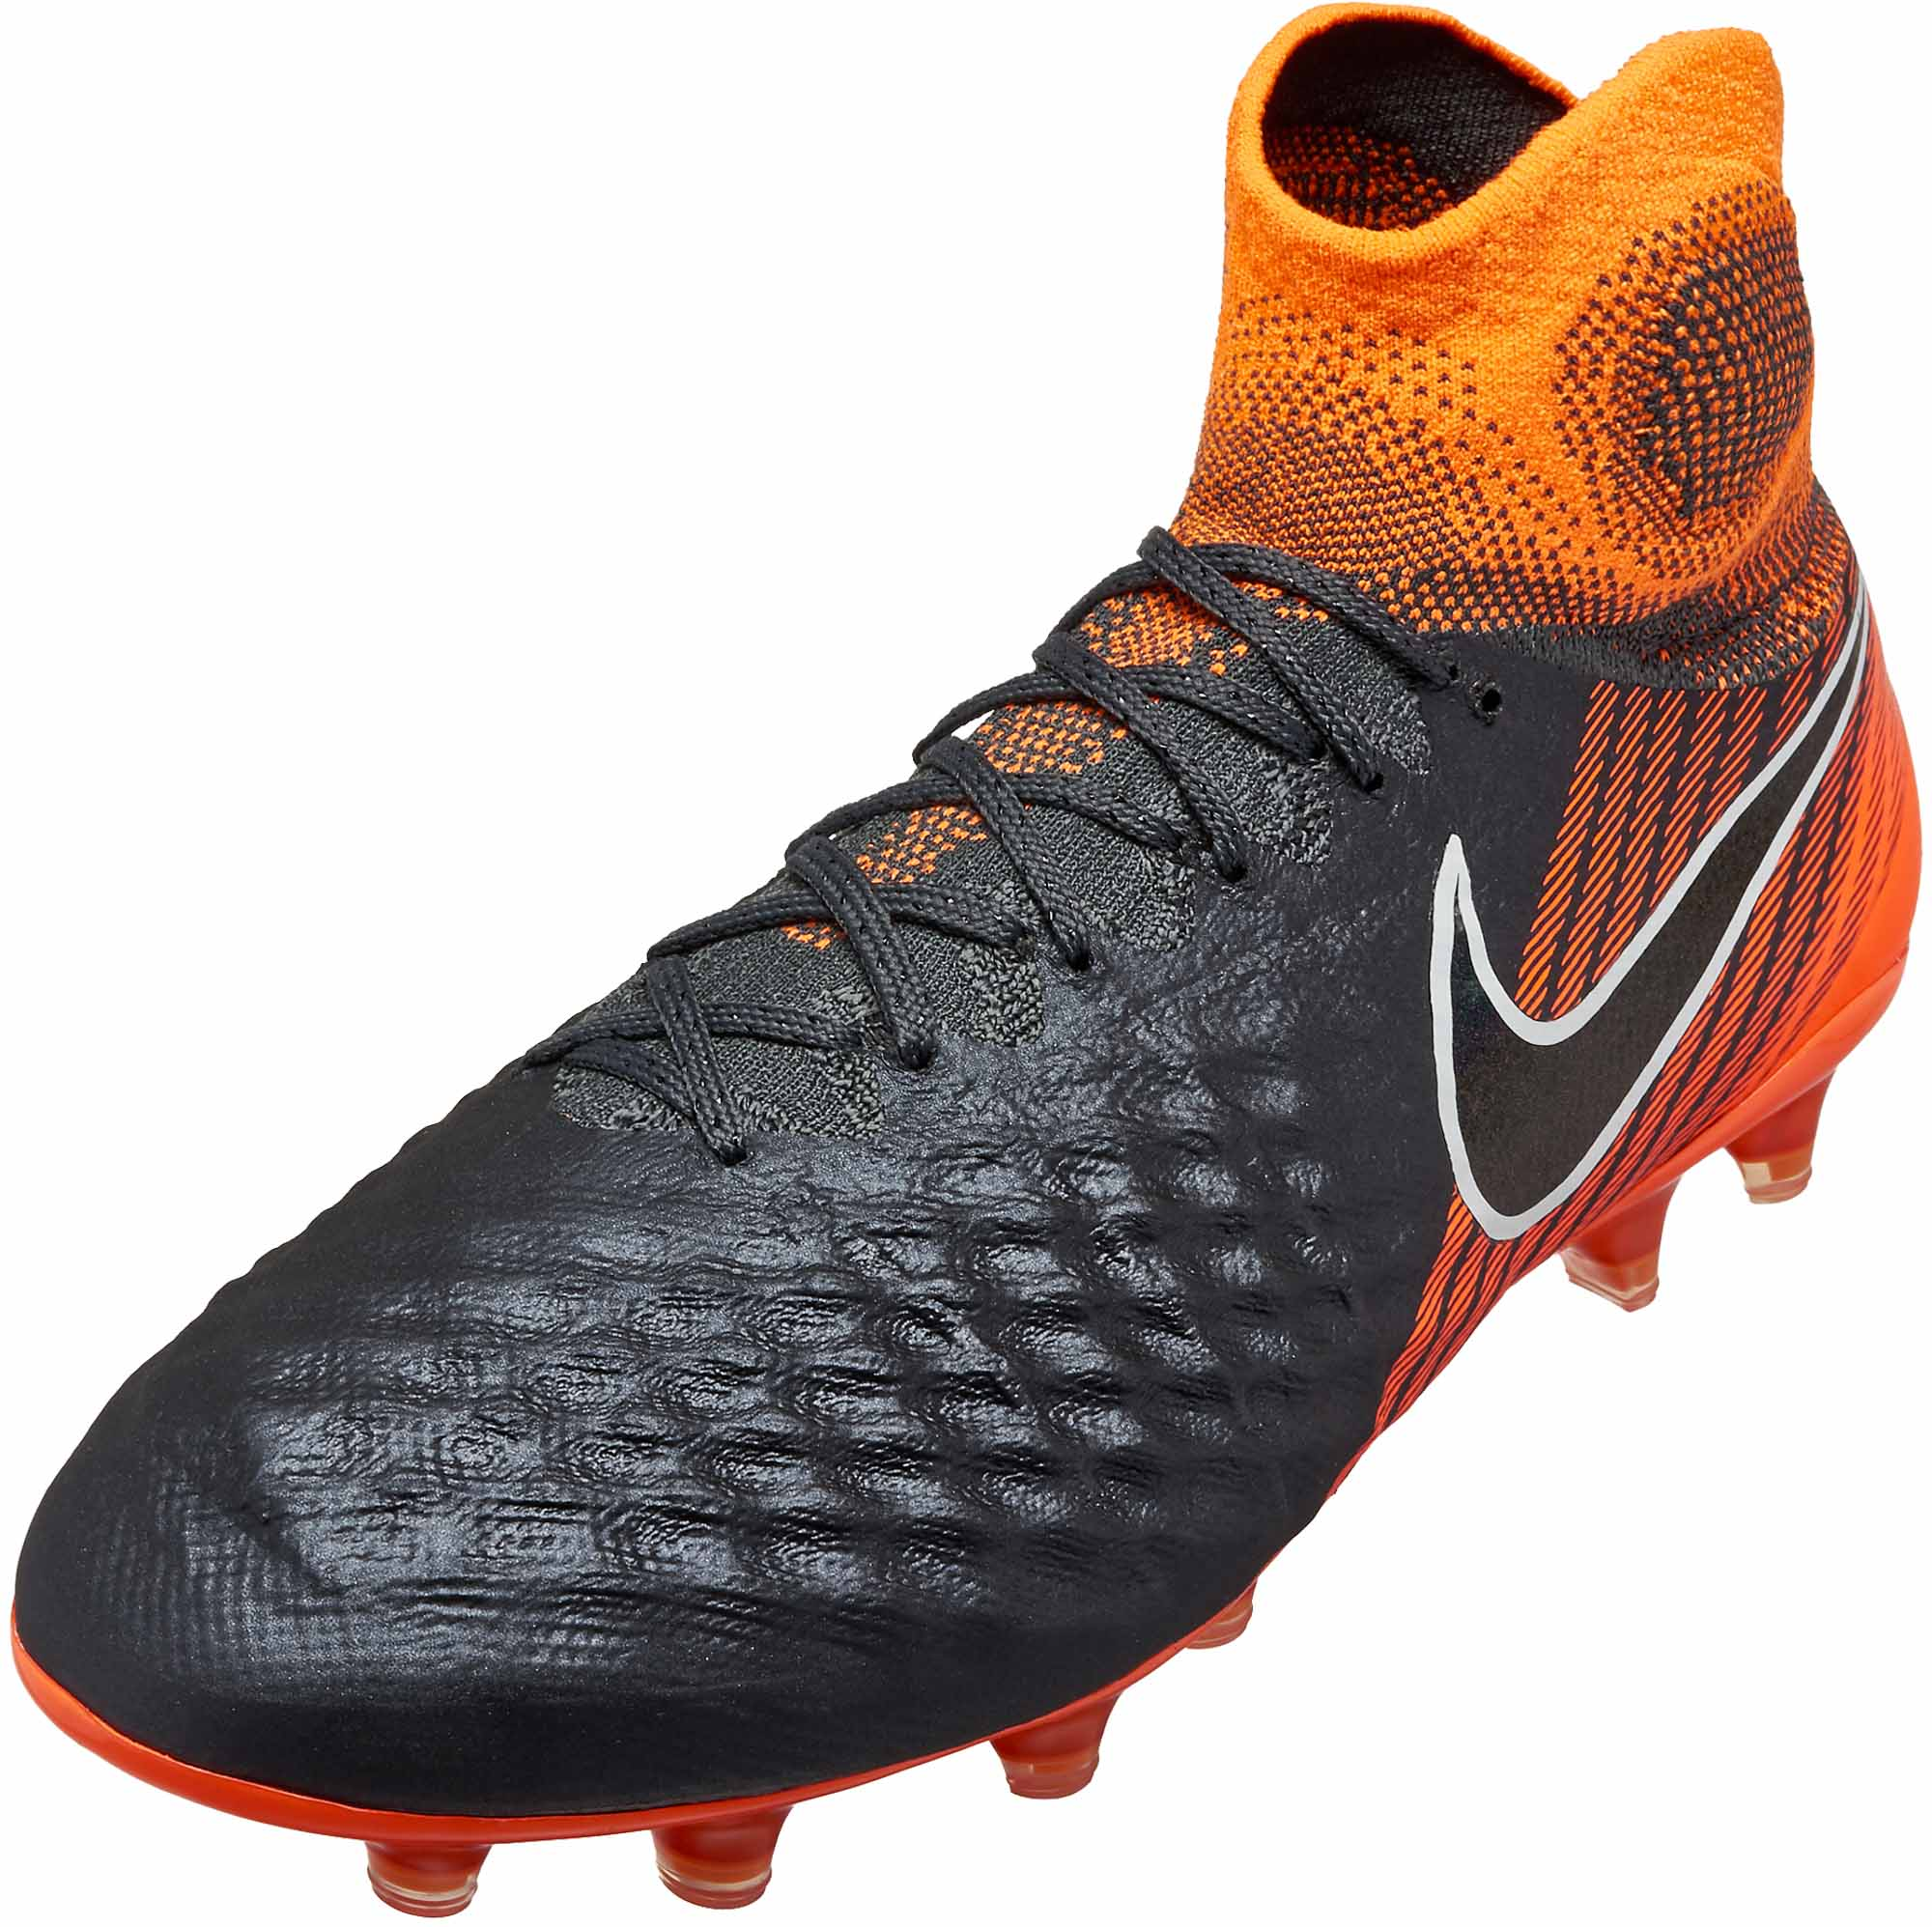 c6d3f1894a55 Nike Magista Obra 2 Elite DF FG – Dark Grey Total Orange